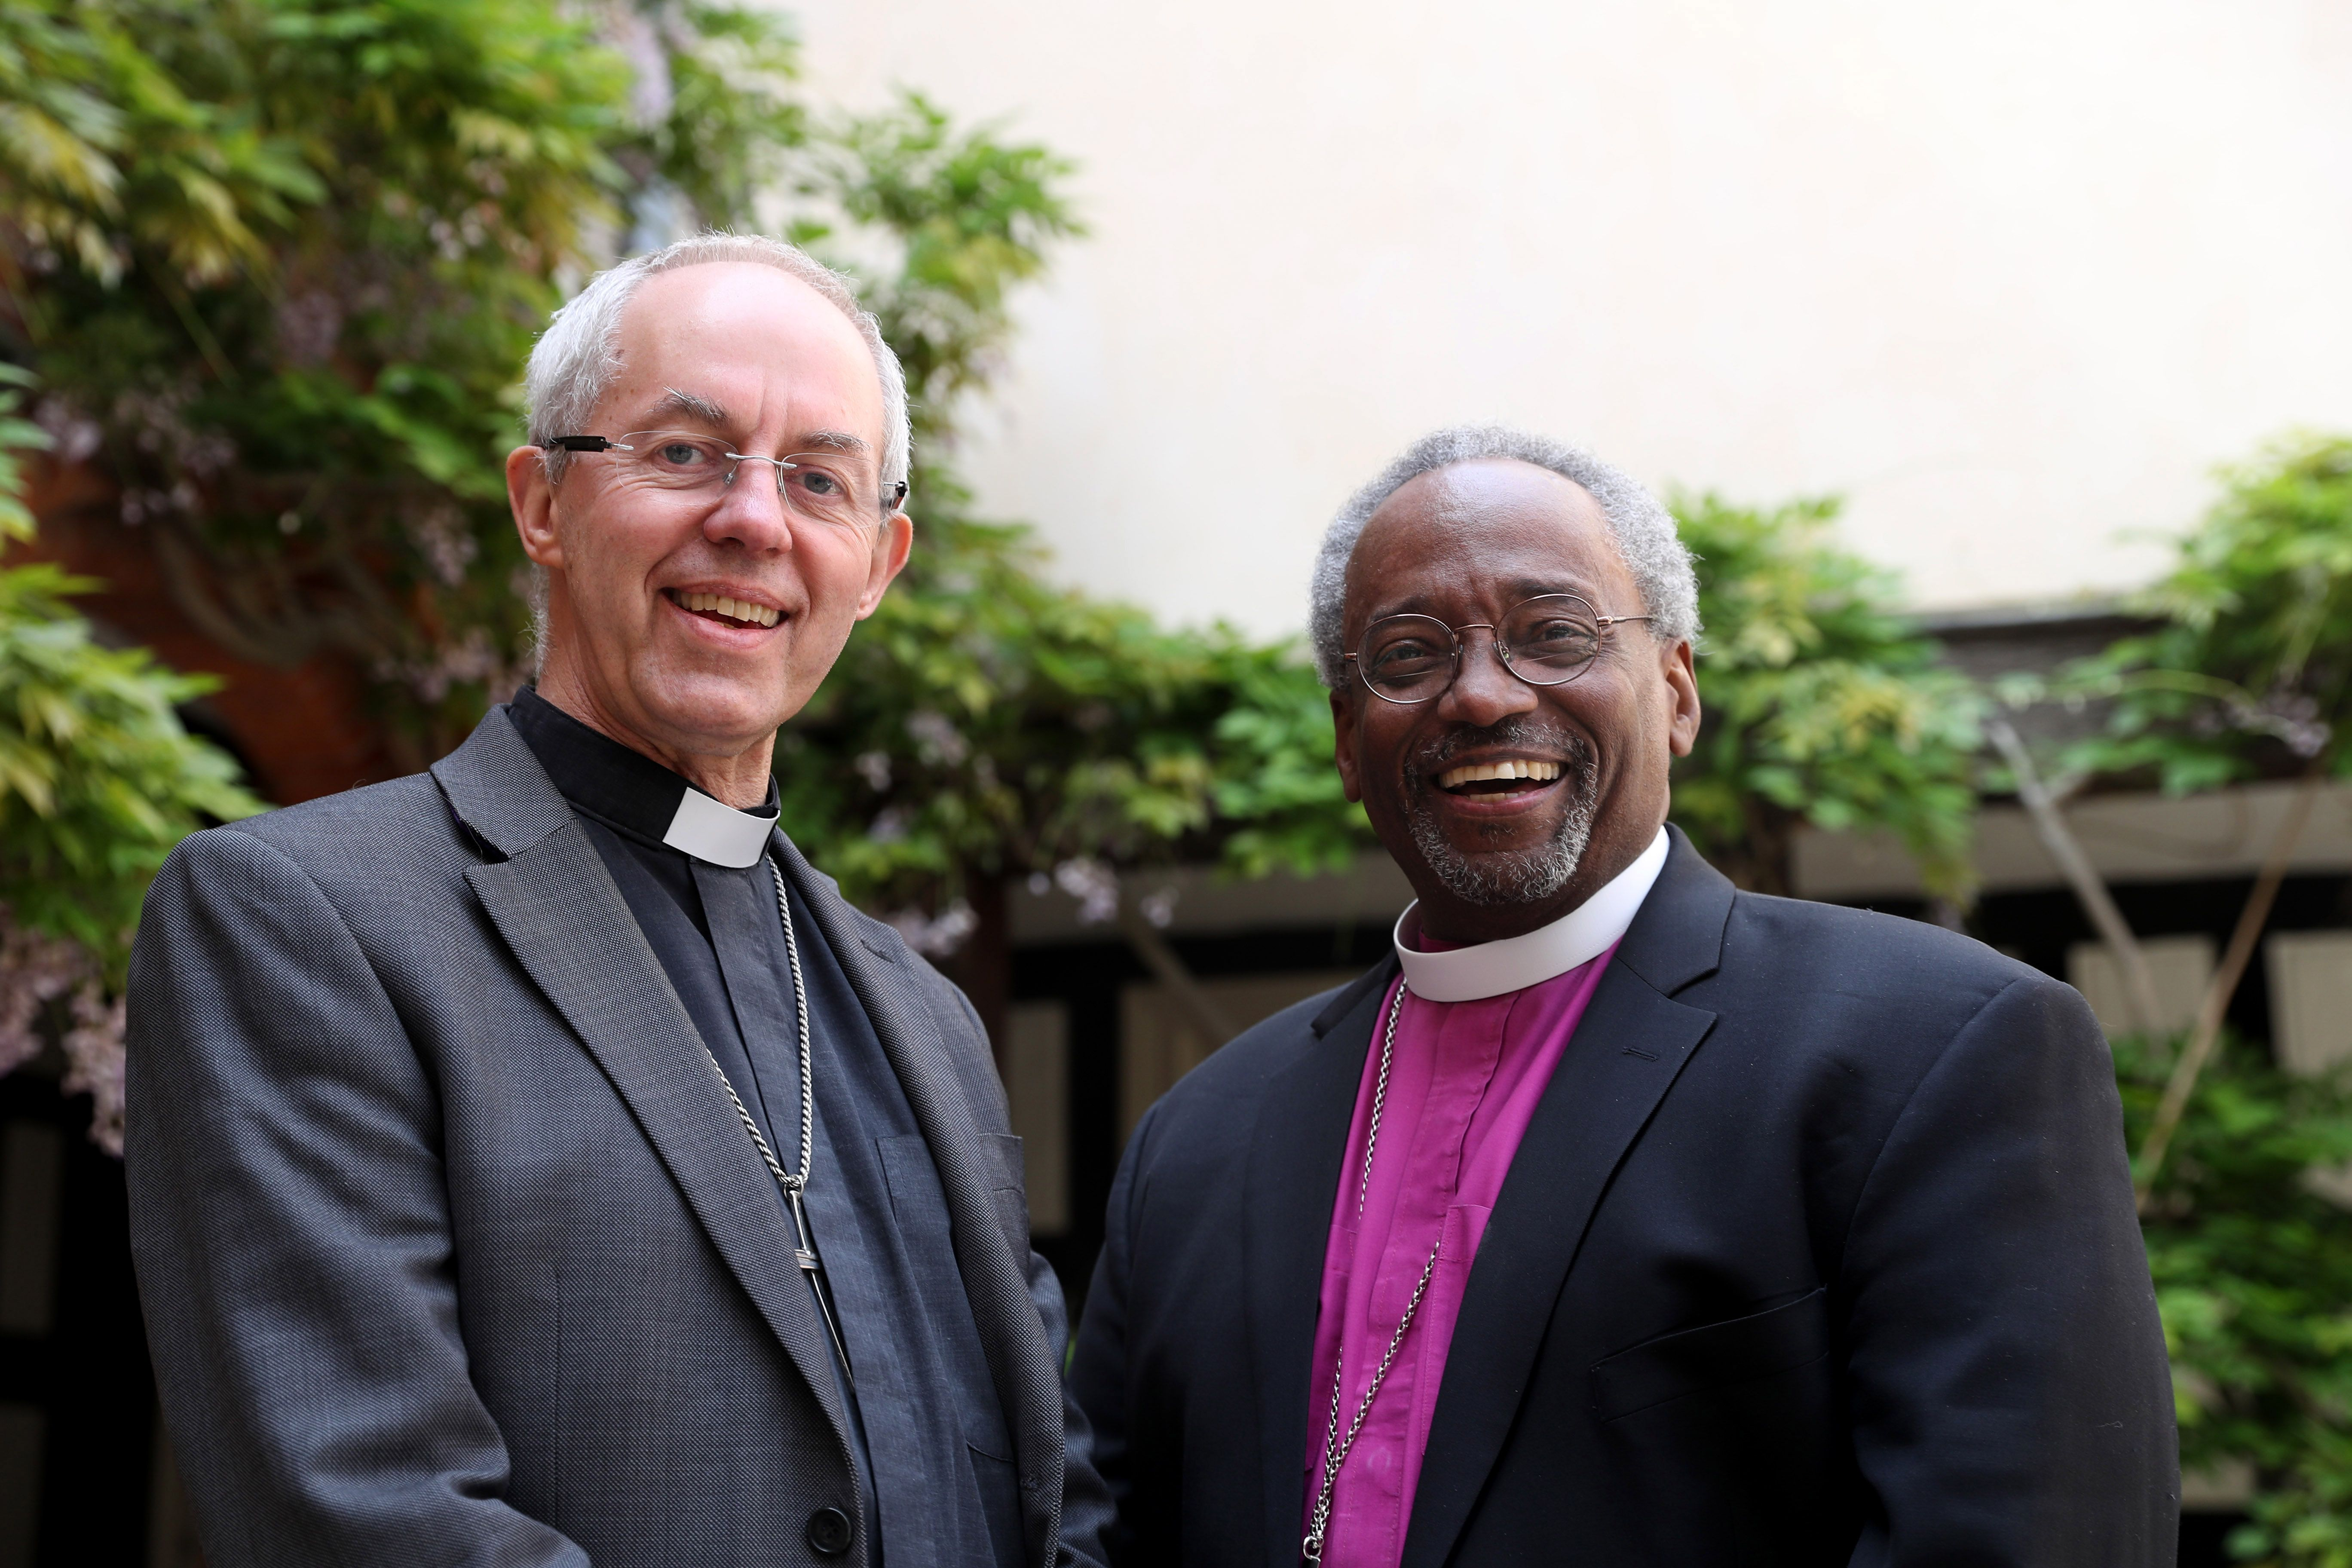 Michael Curry Royal Wedding.Bishop Michael Curry Blew The Place Open At Royal Wedding